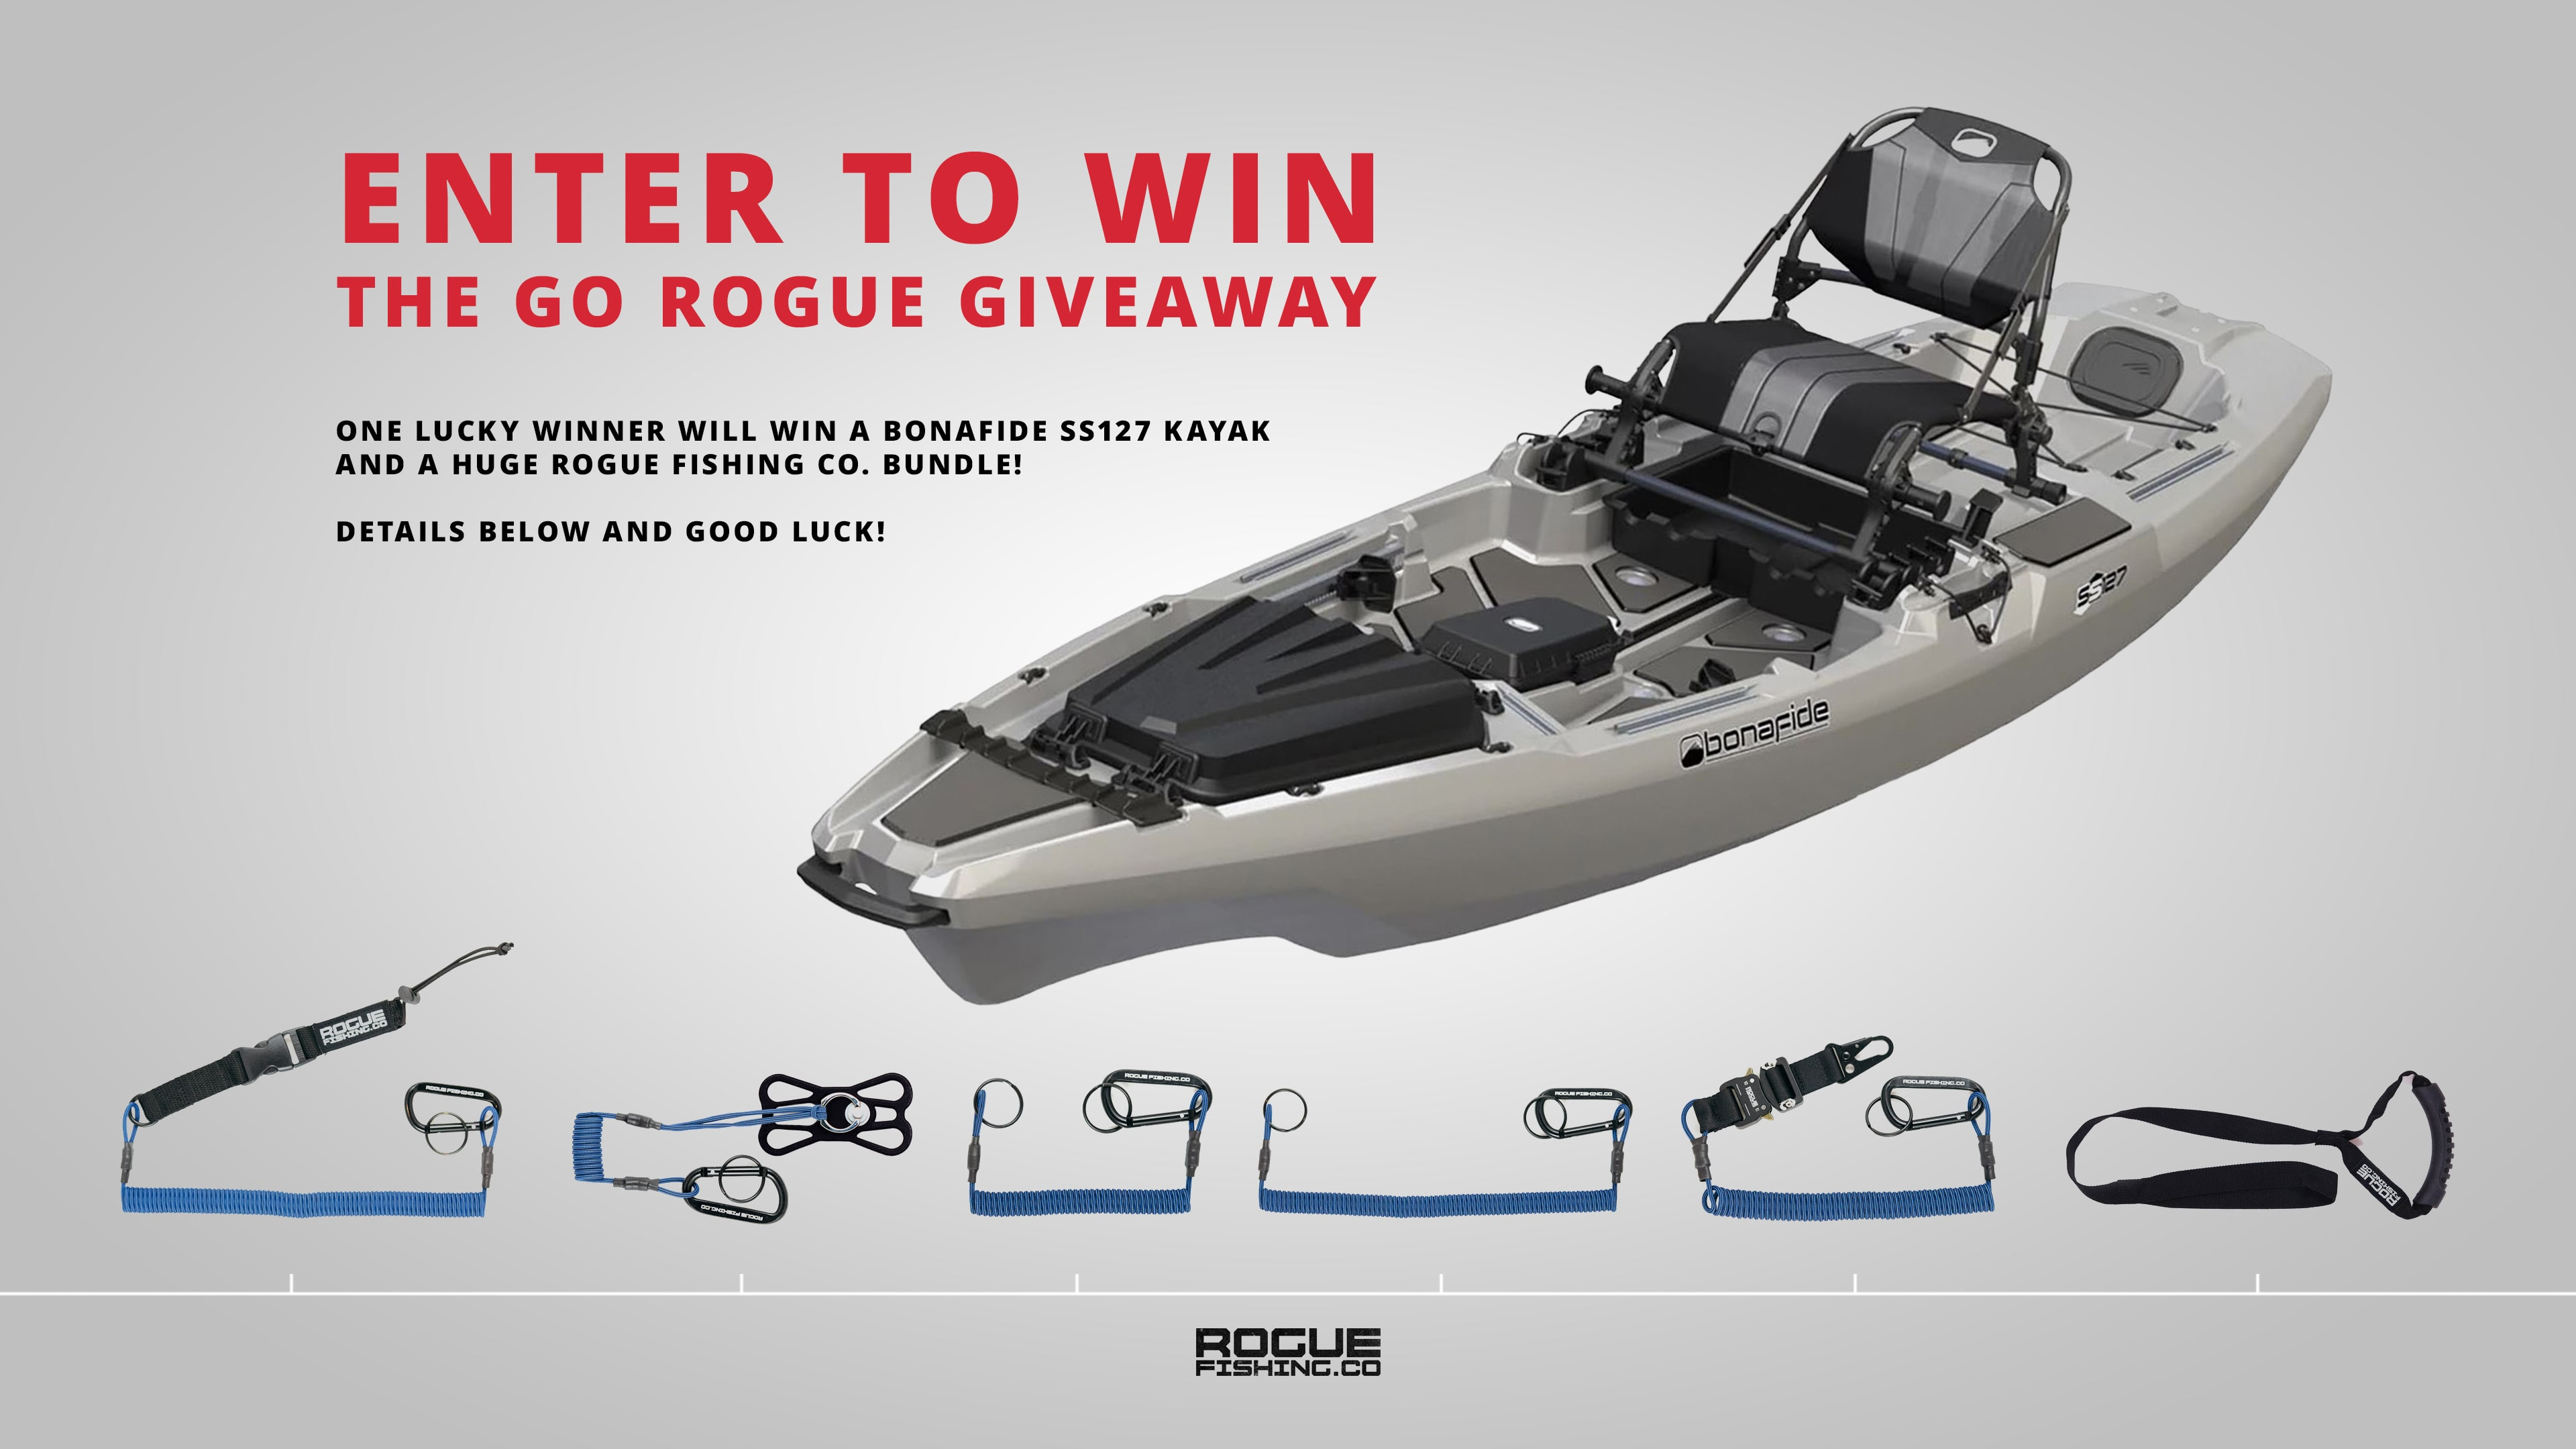 THE GO ROGUE GIVEAWAY. Win a Kayak. Giveaway Image